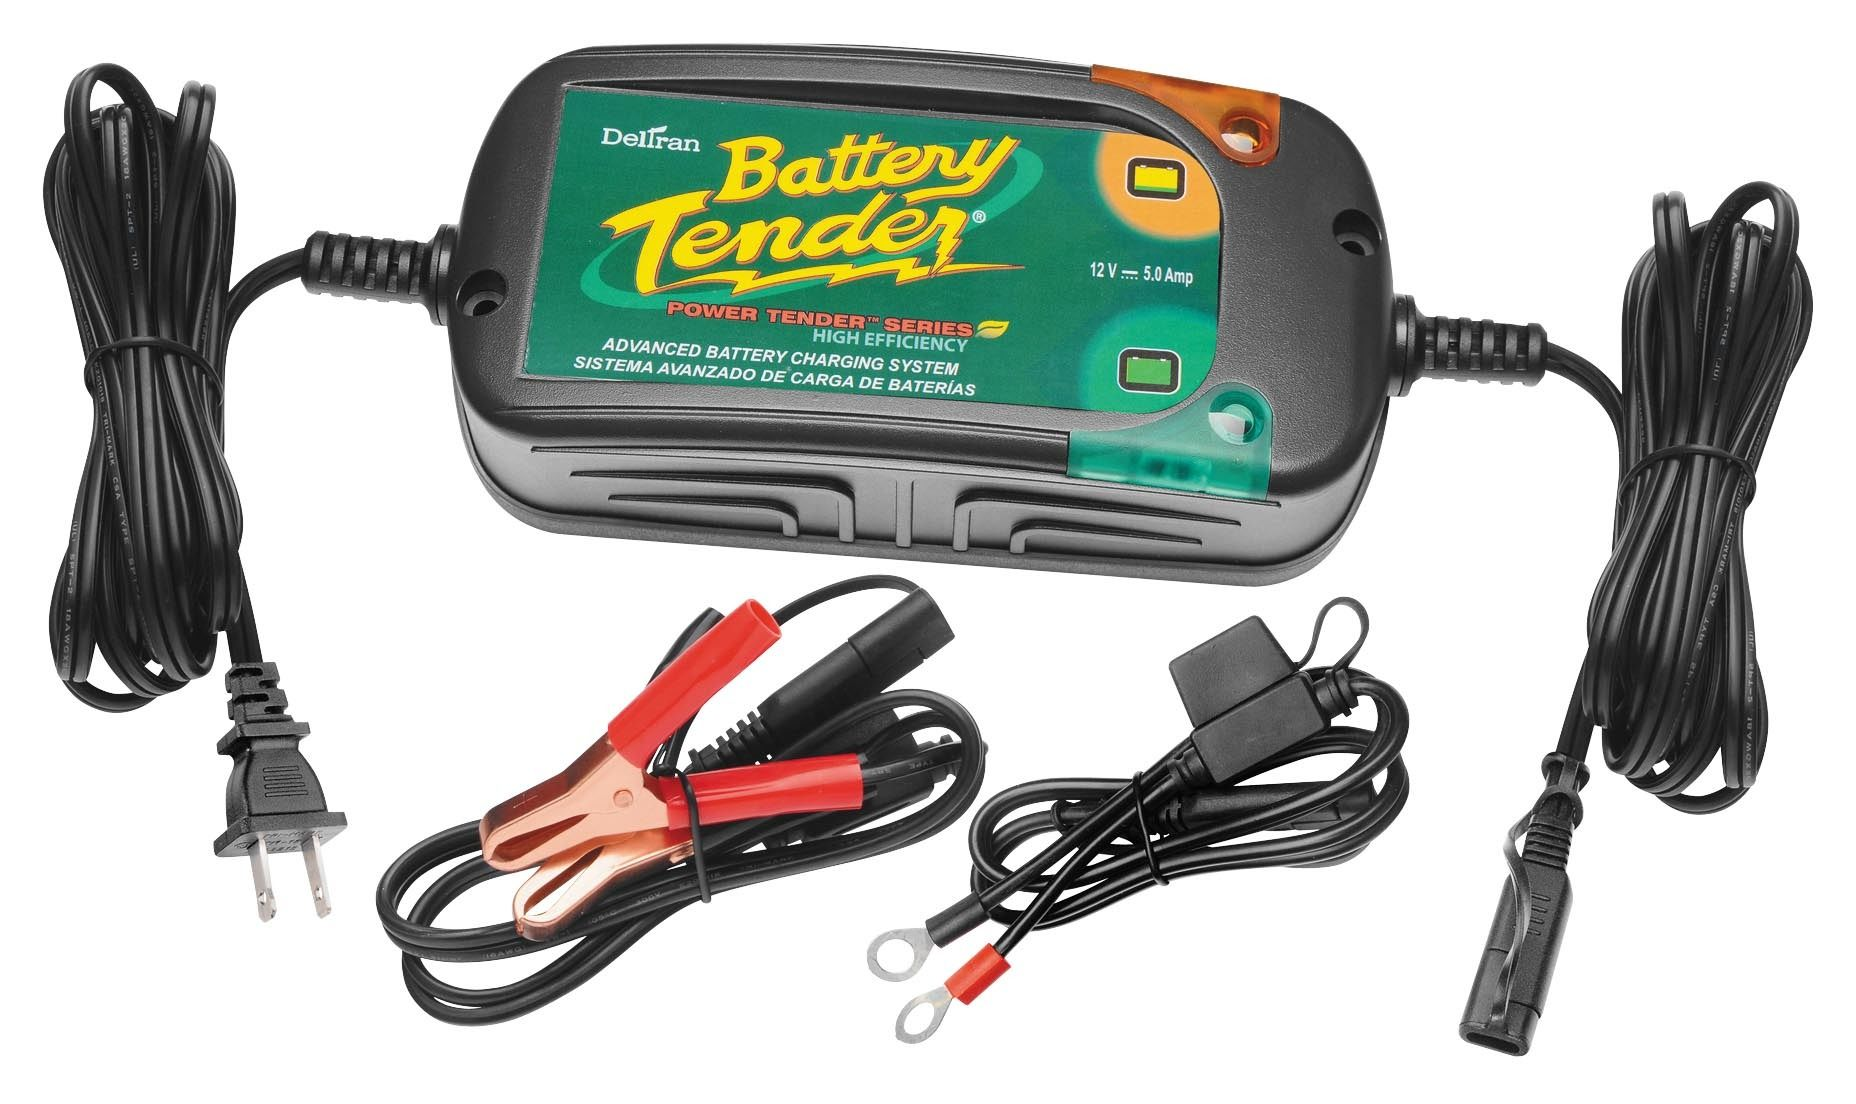 Battery Tender Power Tender Plus He 10 9 99 Off